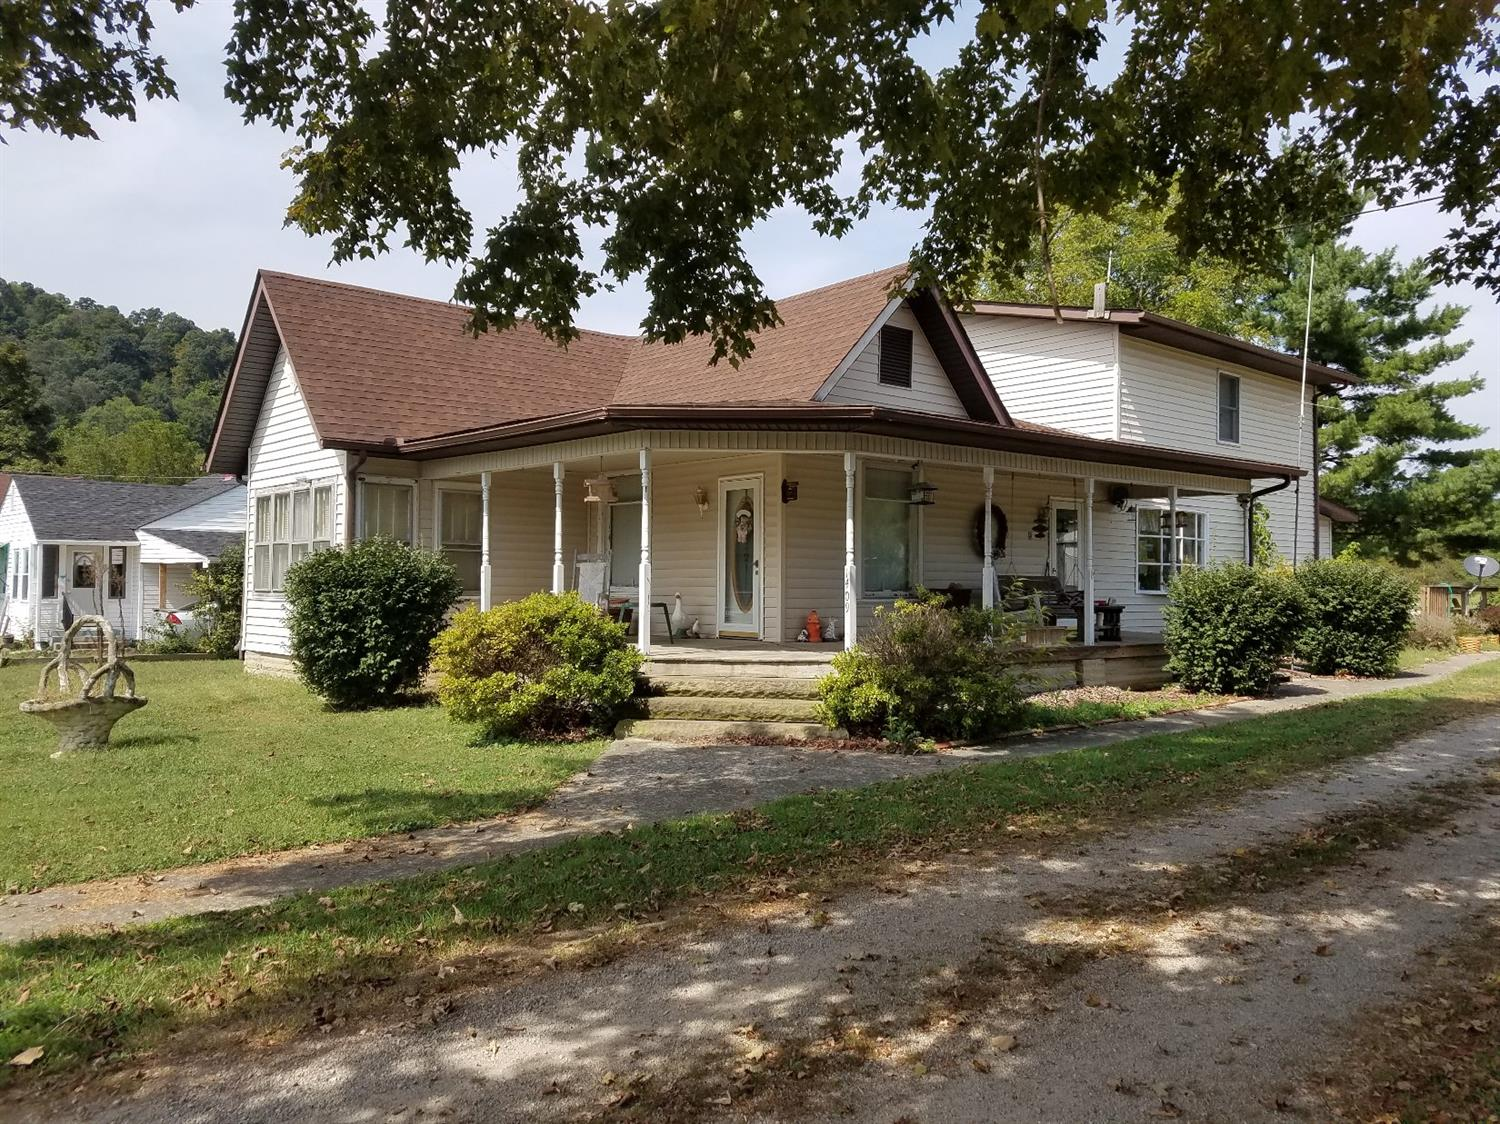 scioto county singles See homes for sale in scioto county, oh homefindercom is your local home source with millions of listings, and thousands of open houses updated daily.